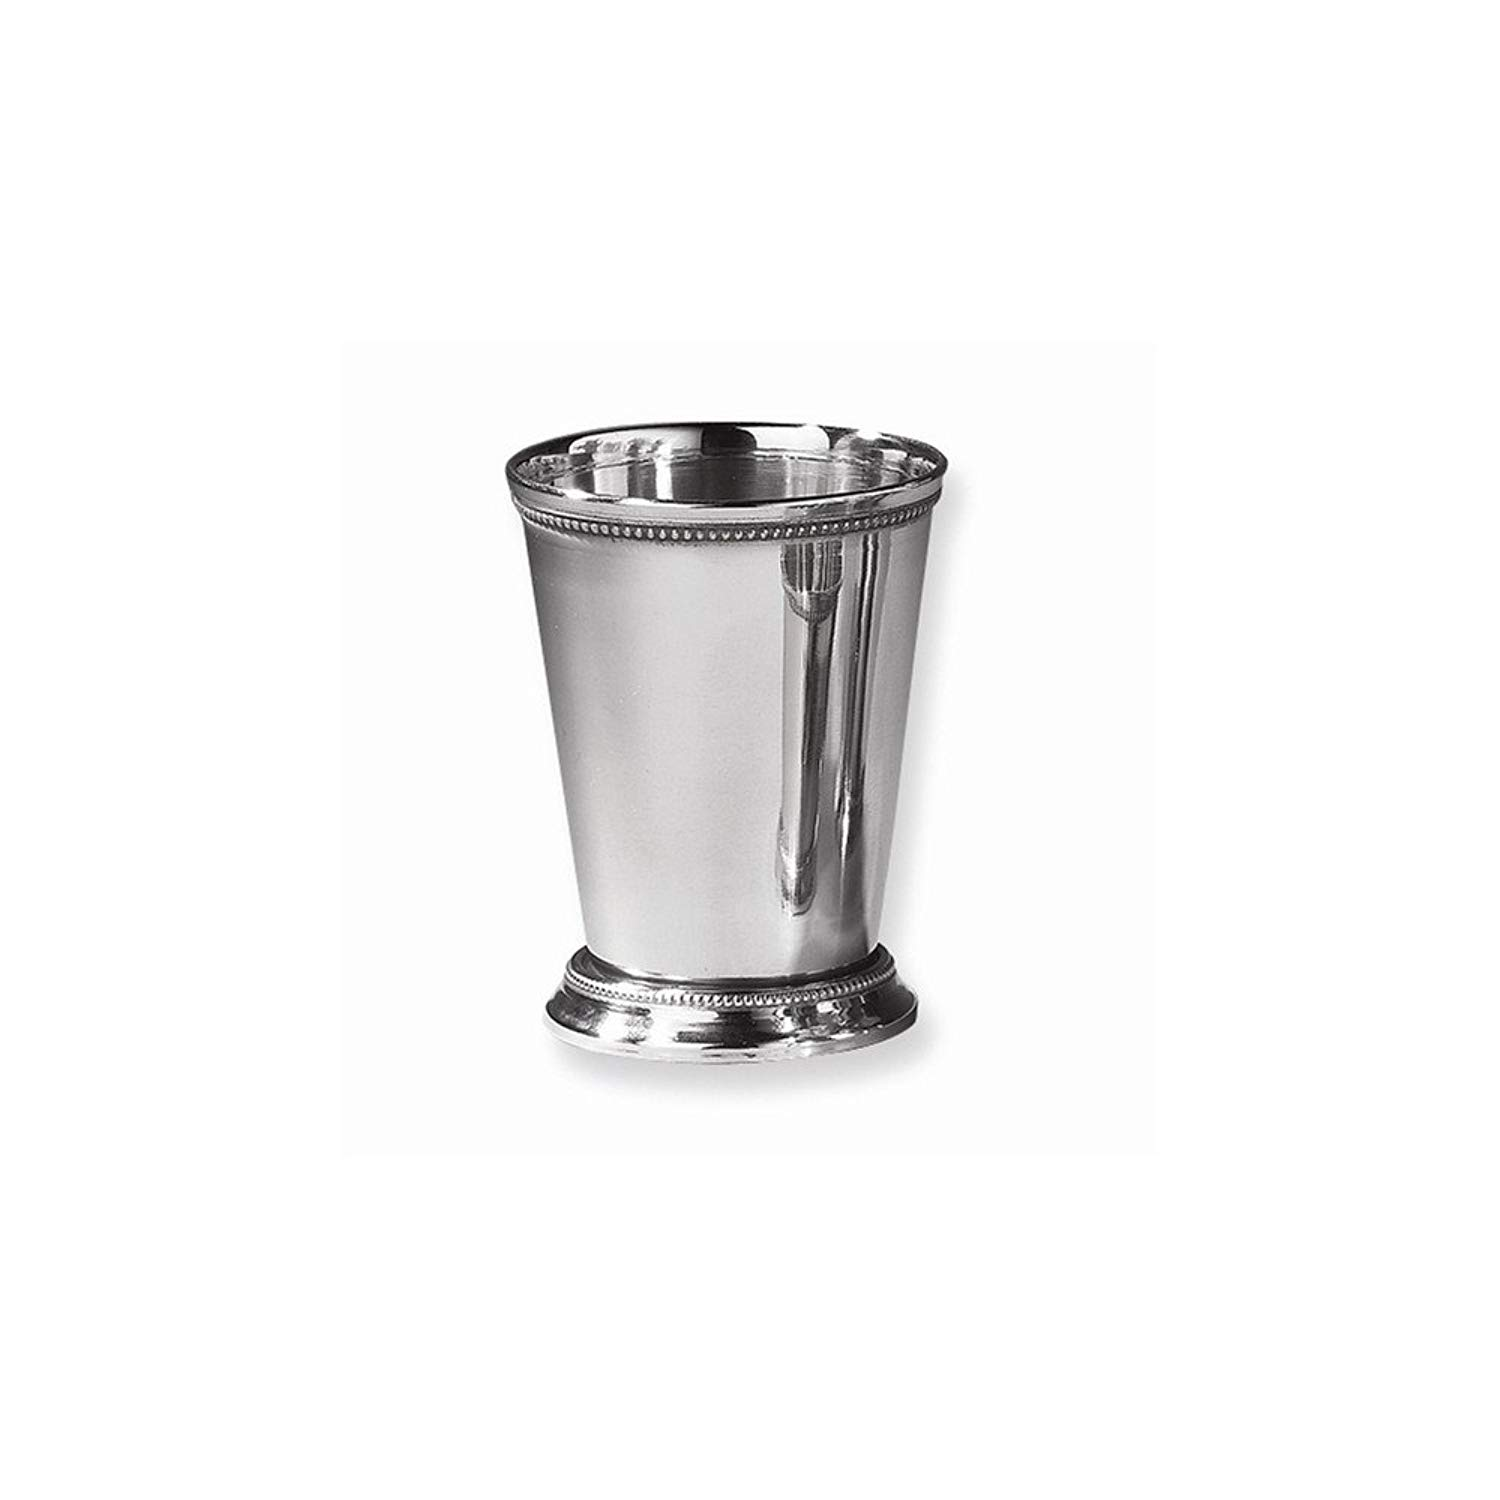 Best Birthday Gift Nickel-plated Stainless Steel Beaded Mint Julep Cup